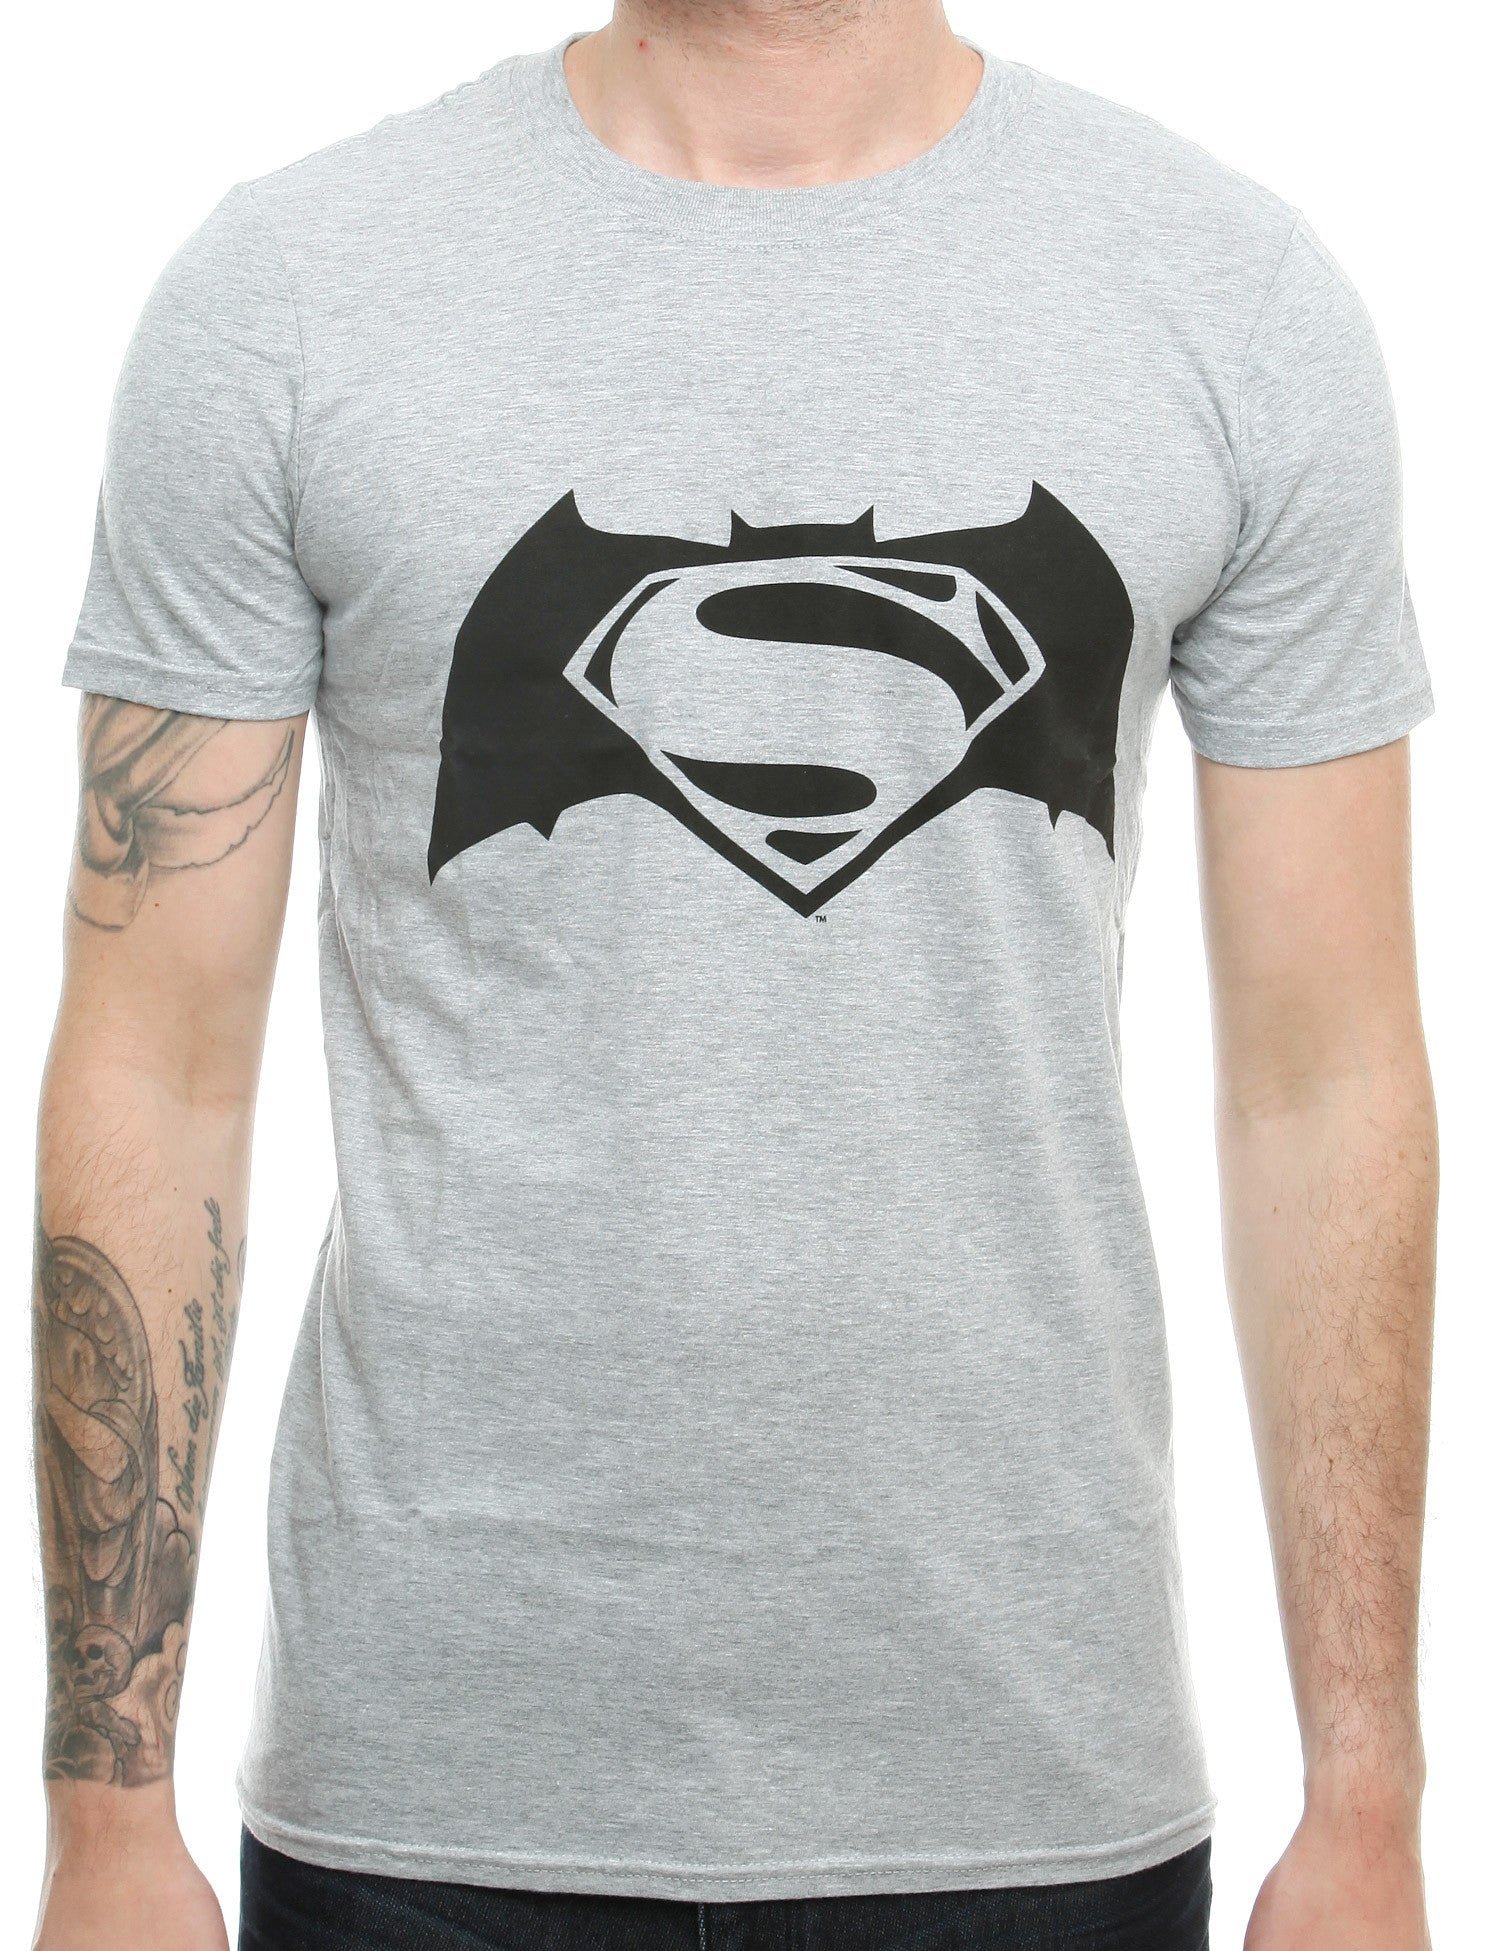 Heroes T-Shirt Superman SU02 Grey